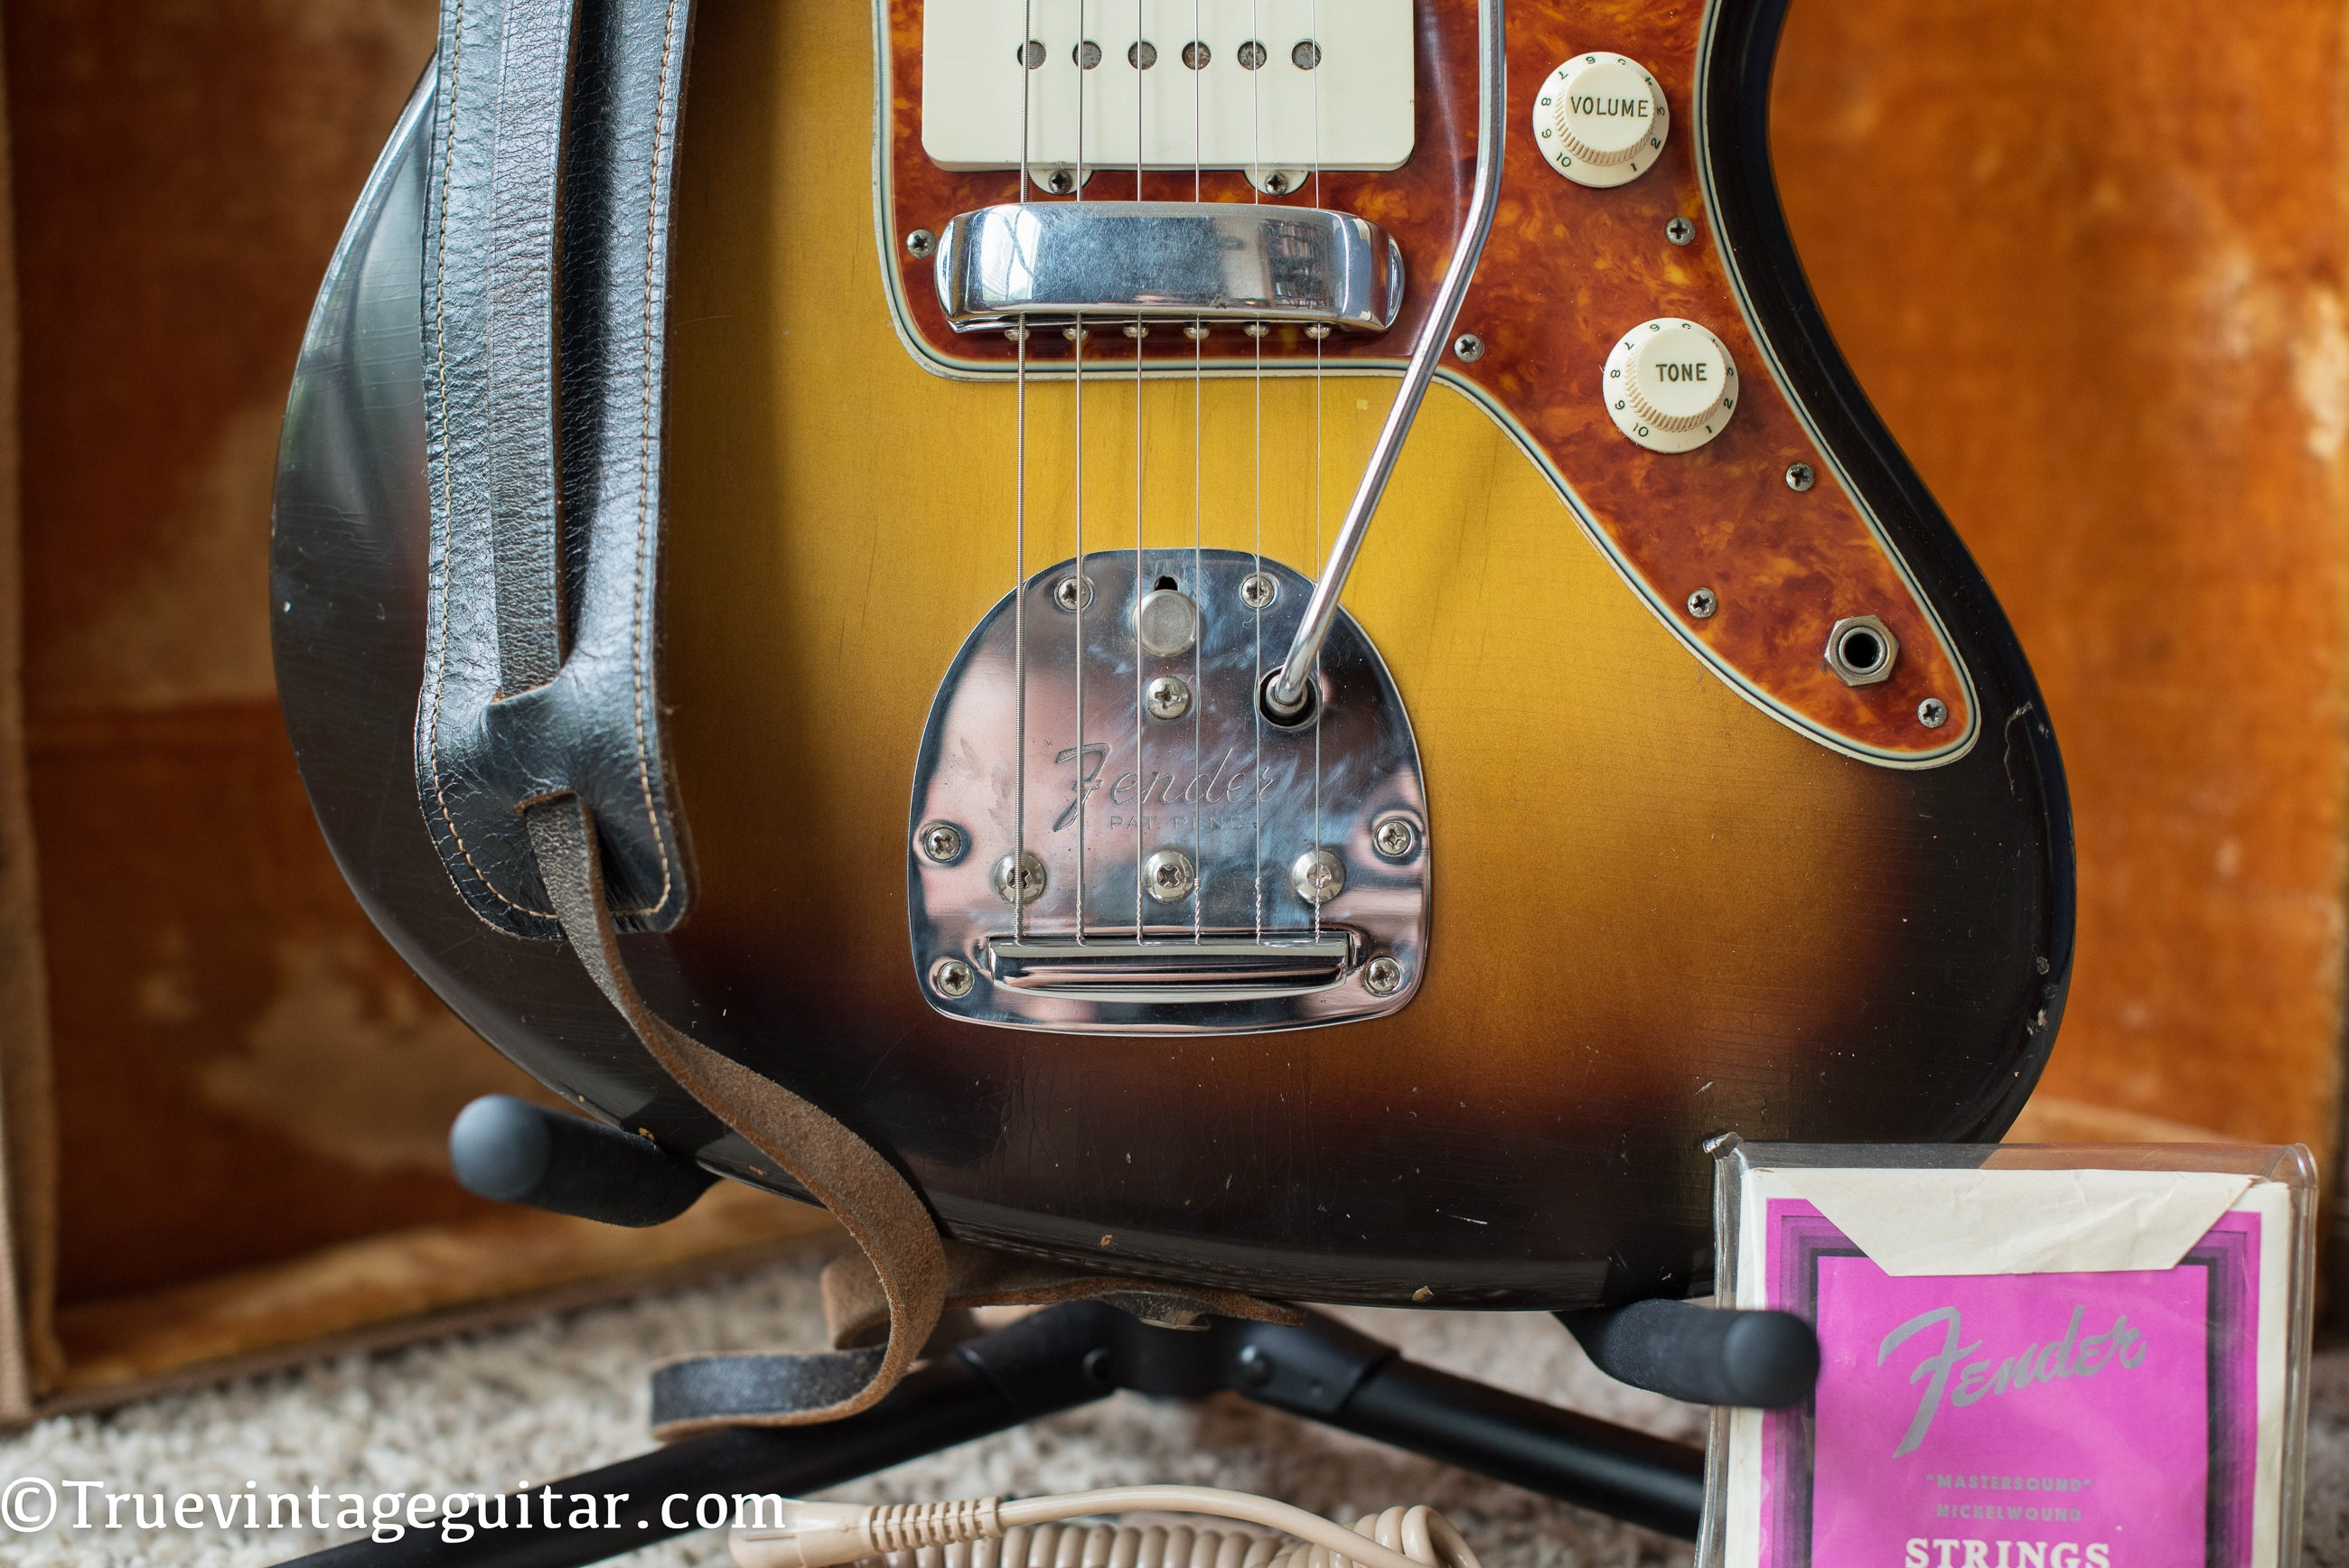 Patent Pending tremolo tailpiece, 1960 Fender Jazzmaster